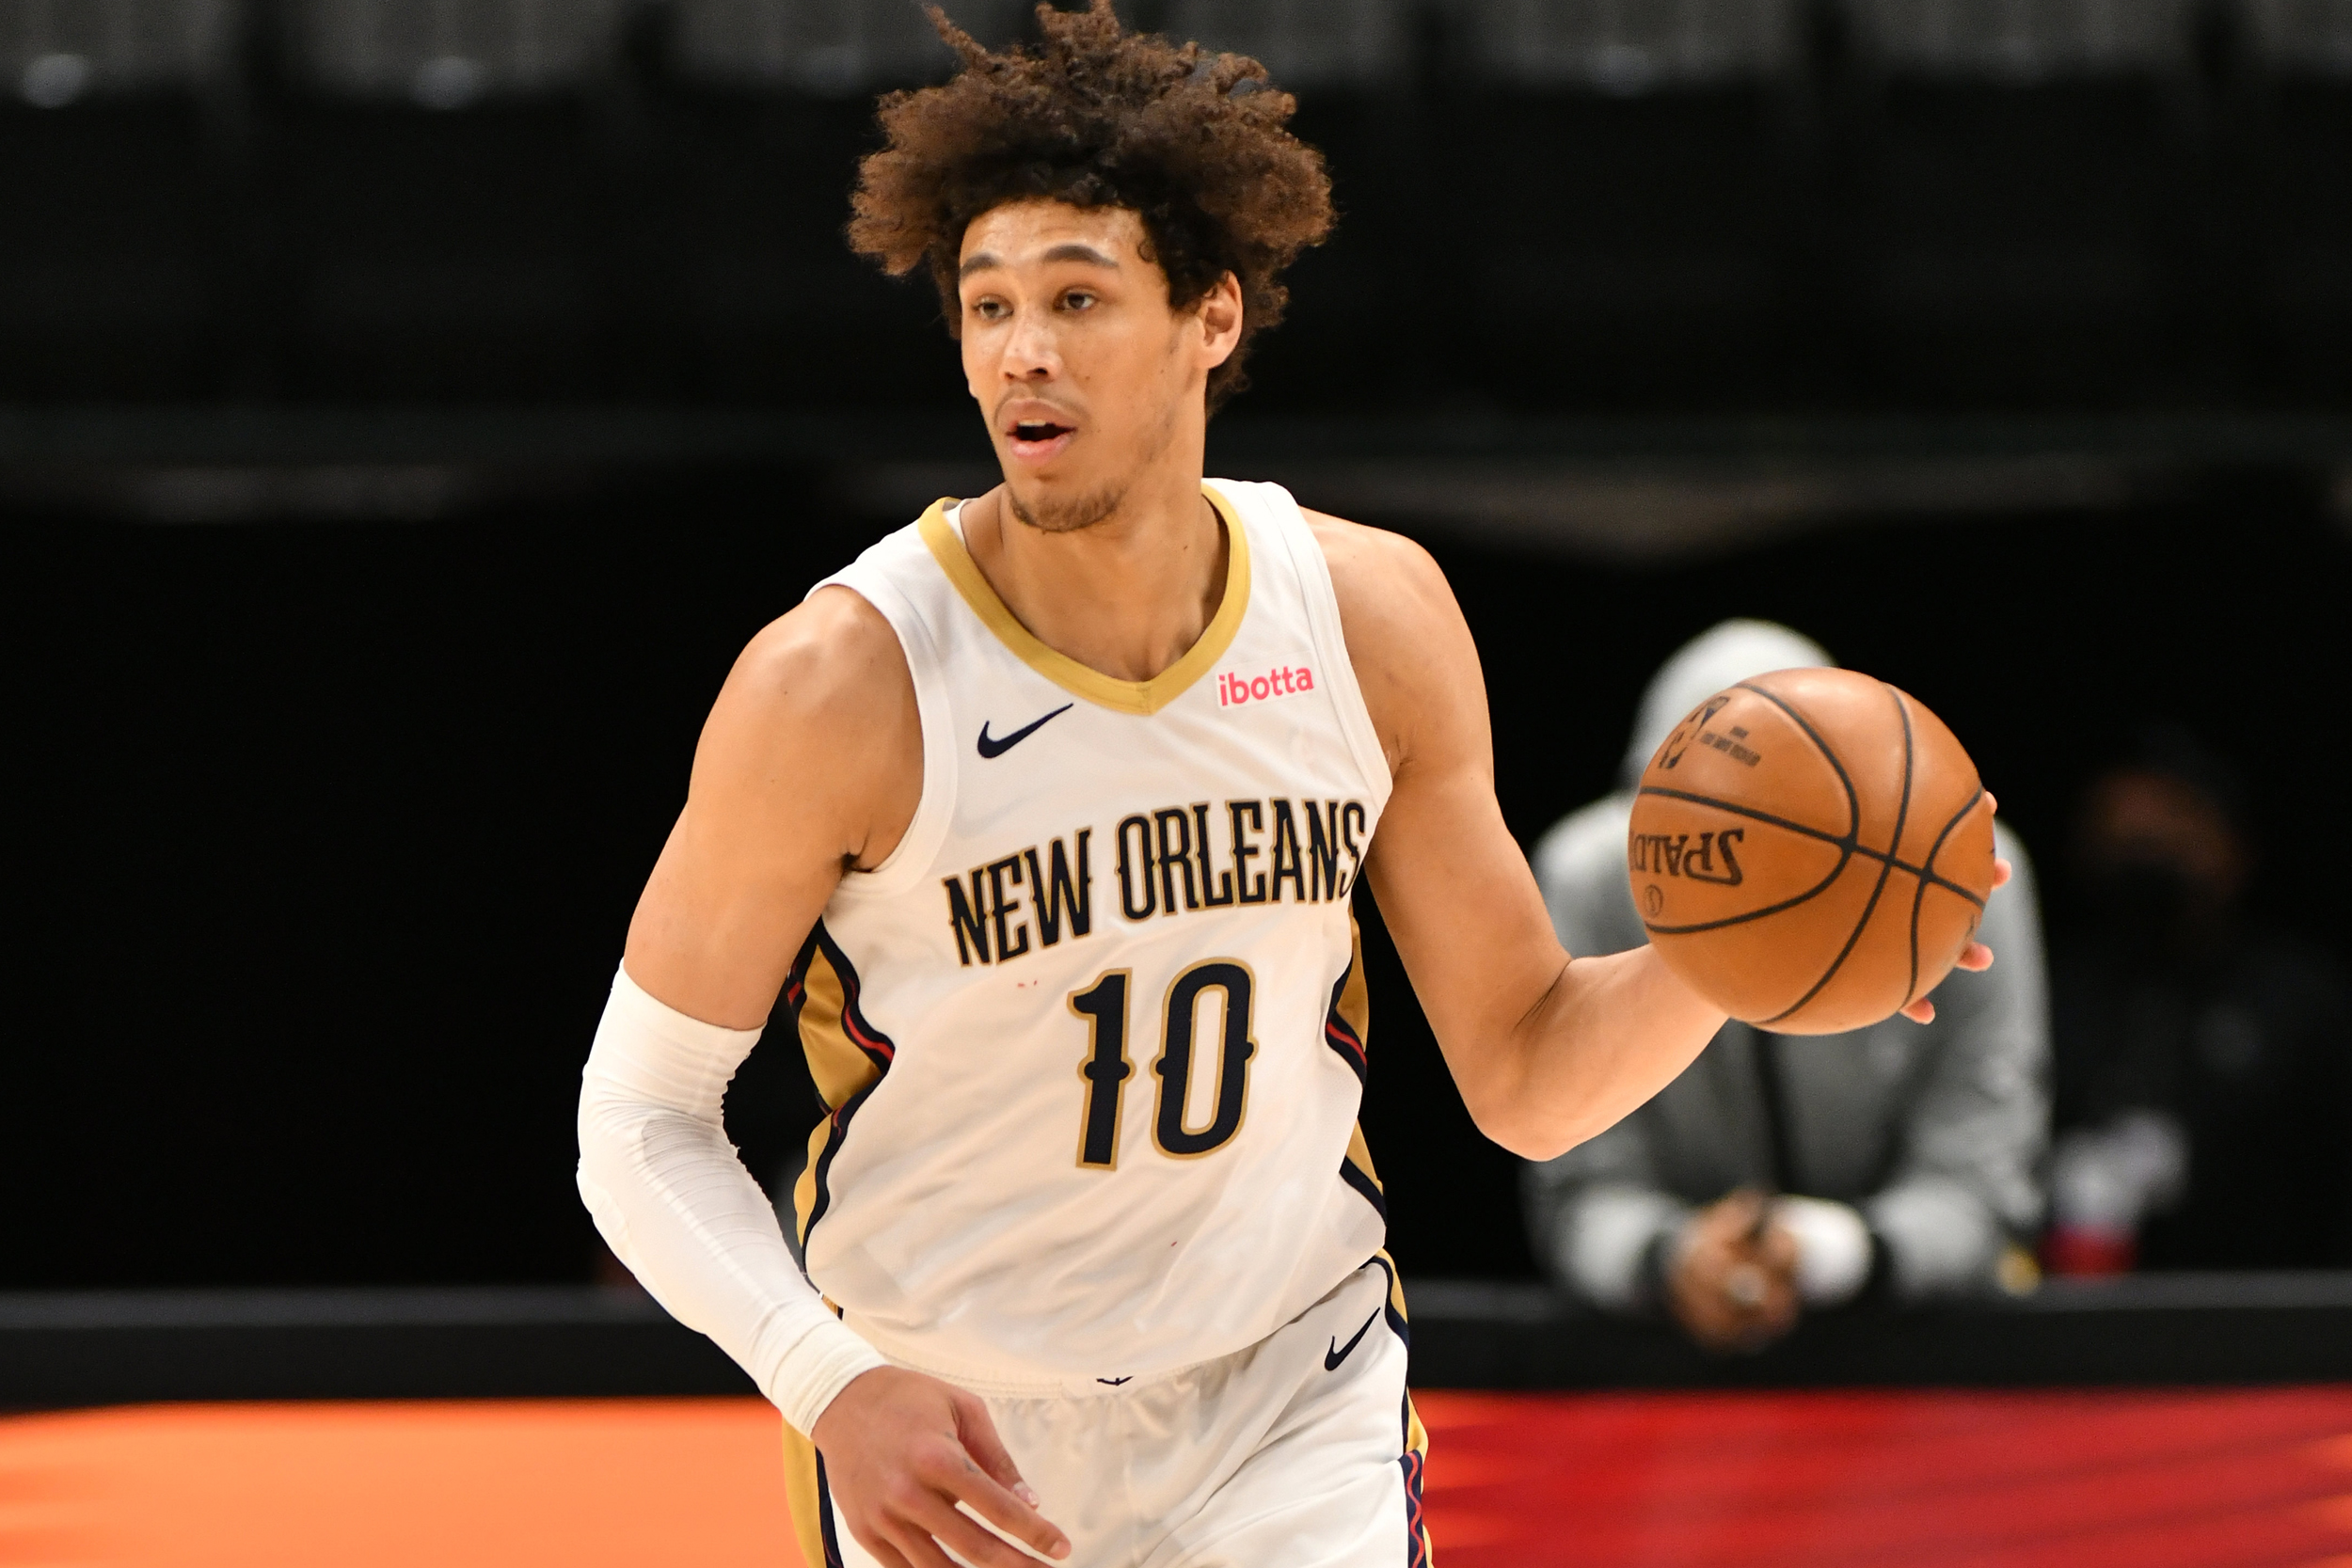 NBA's Jaxson Hayes taken down by police with stun guns during arrest in Los Angeles, police say